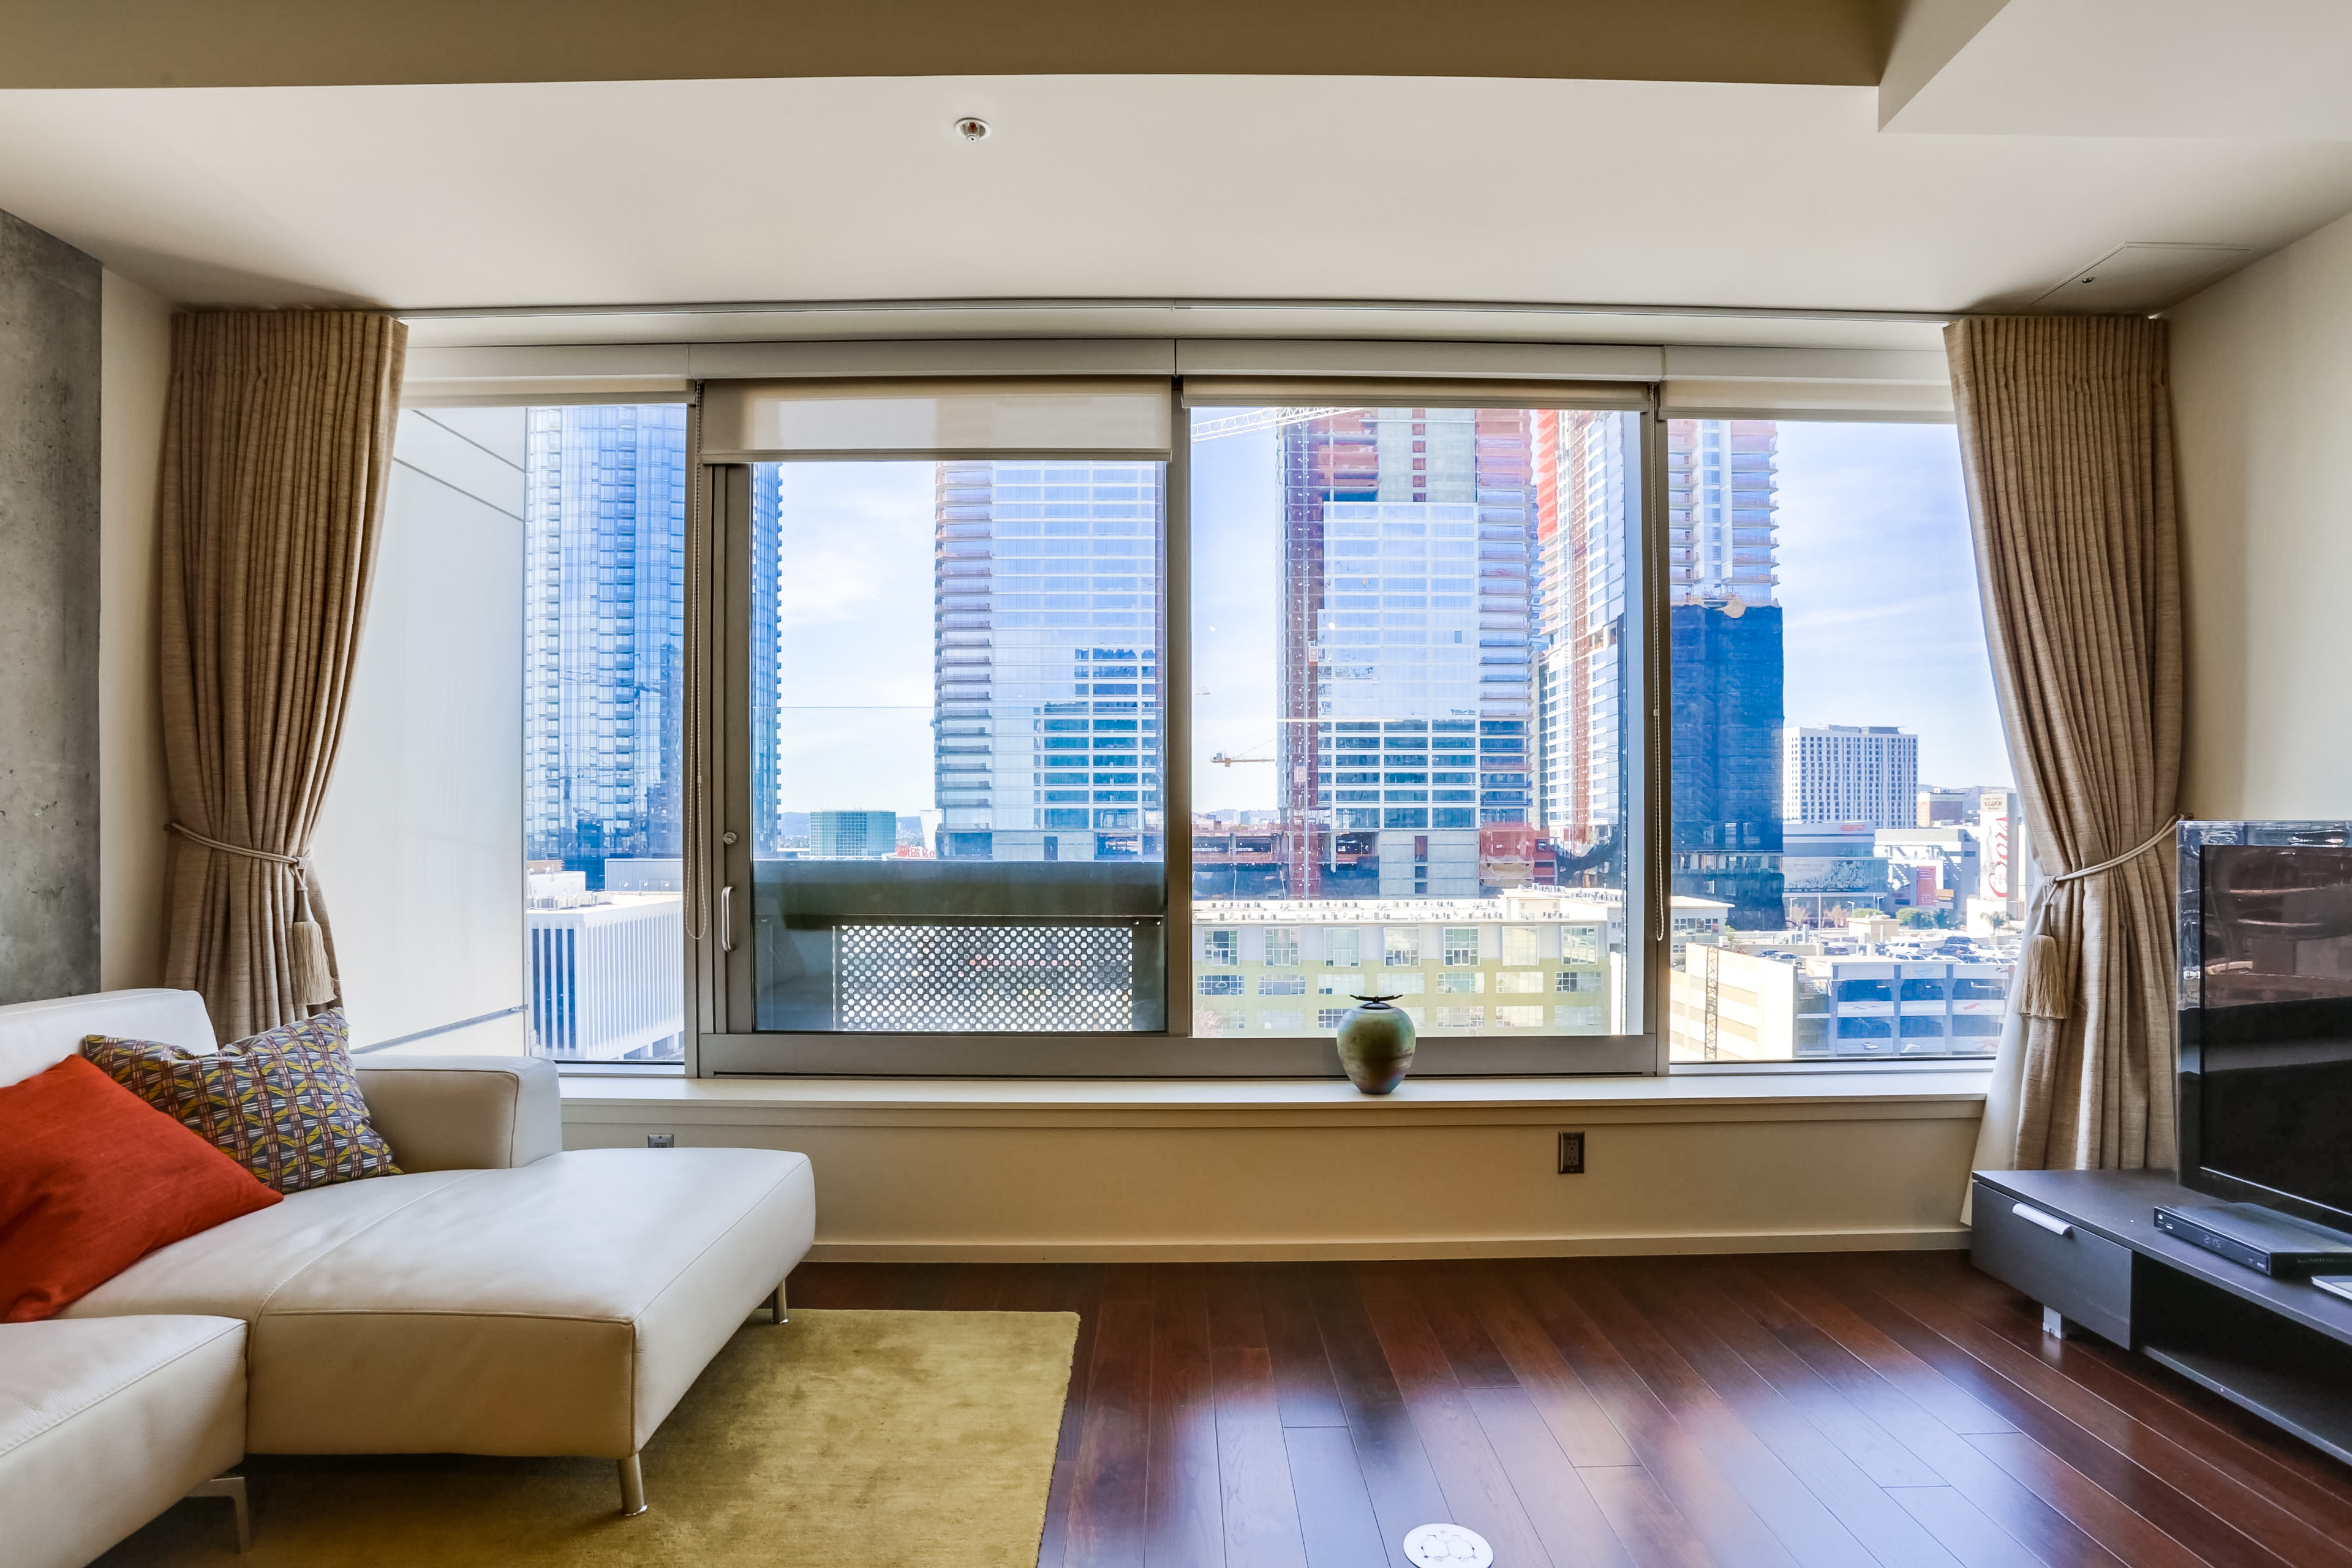 1155-s-grand-ave-1014-011